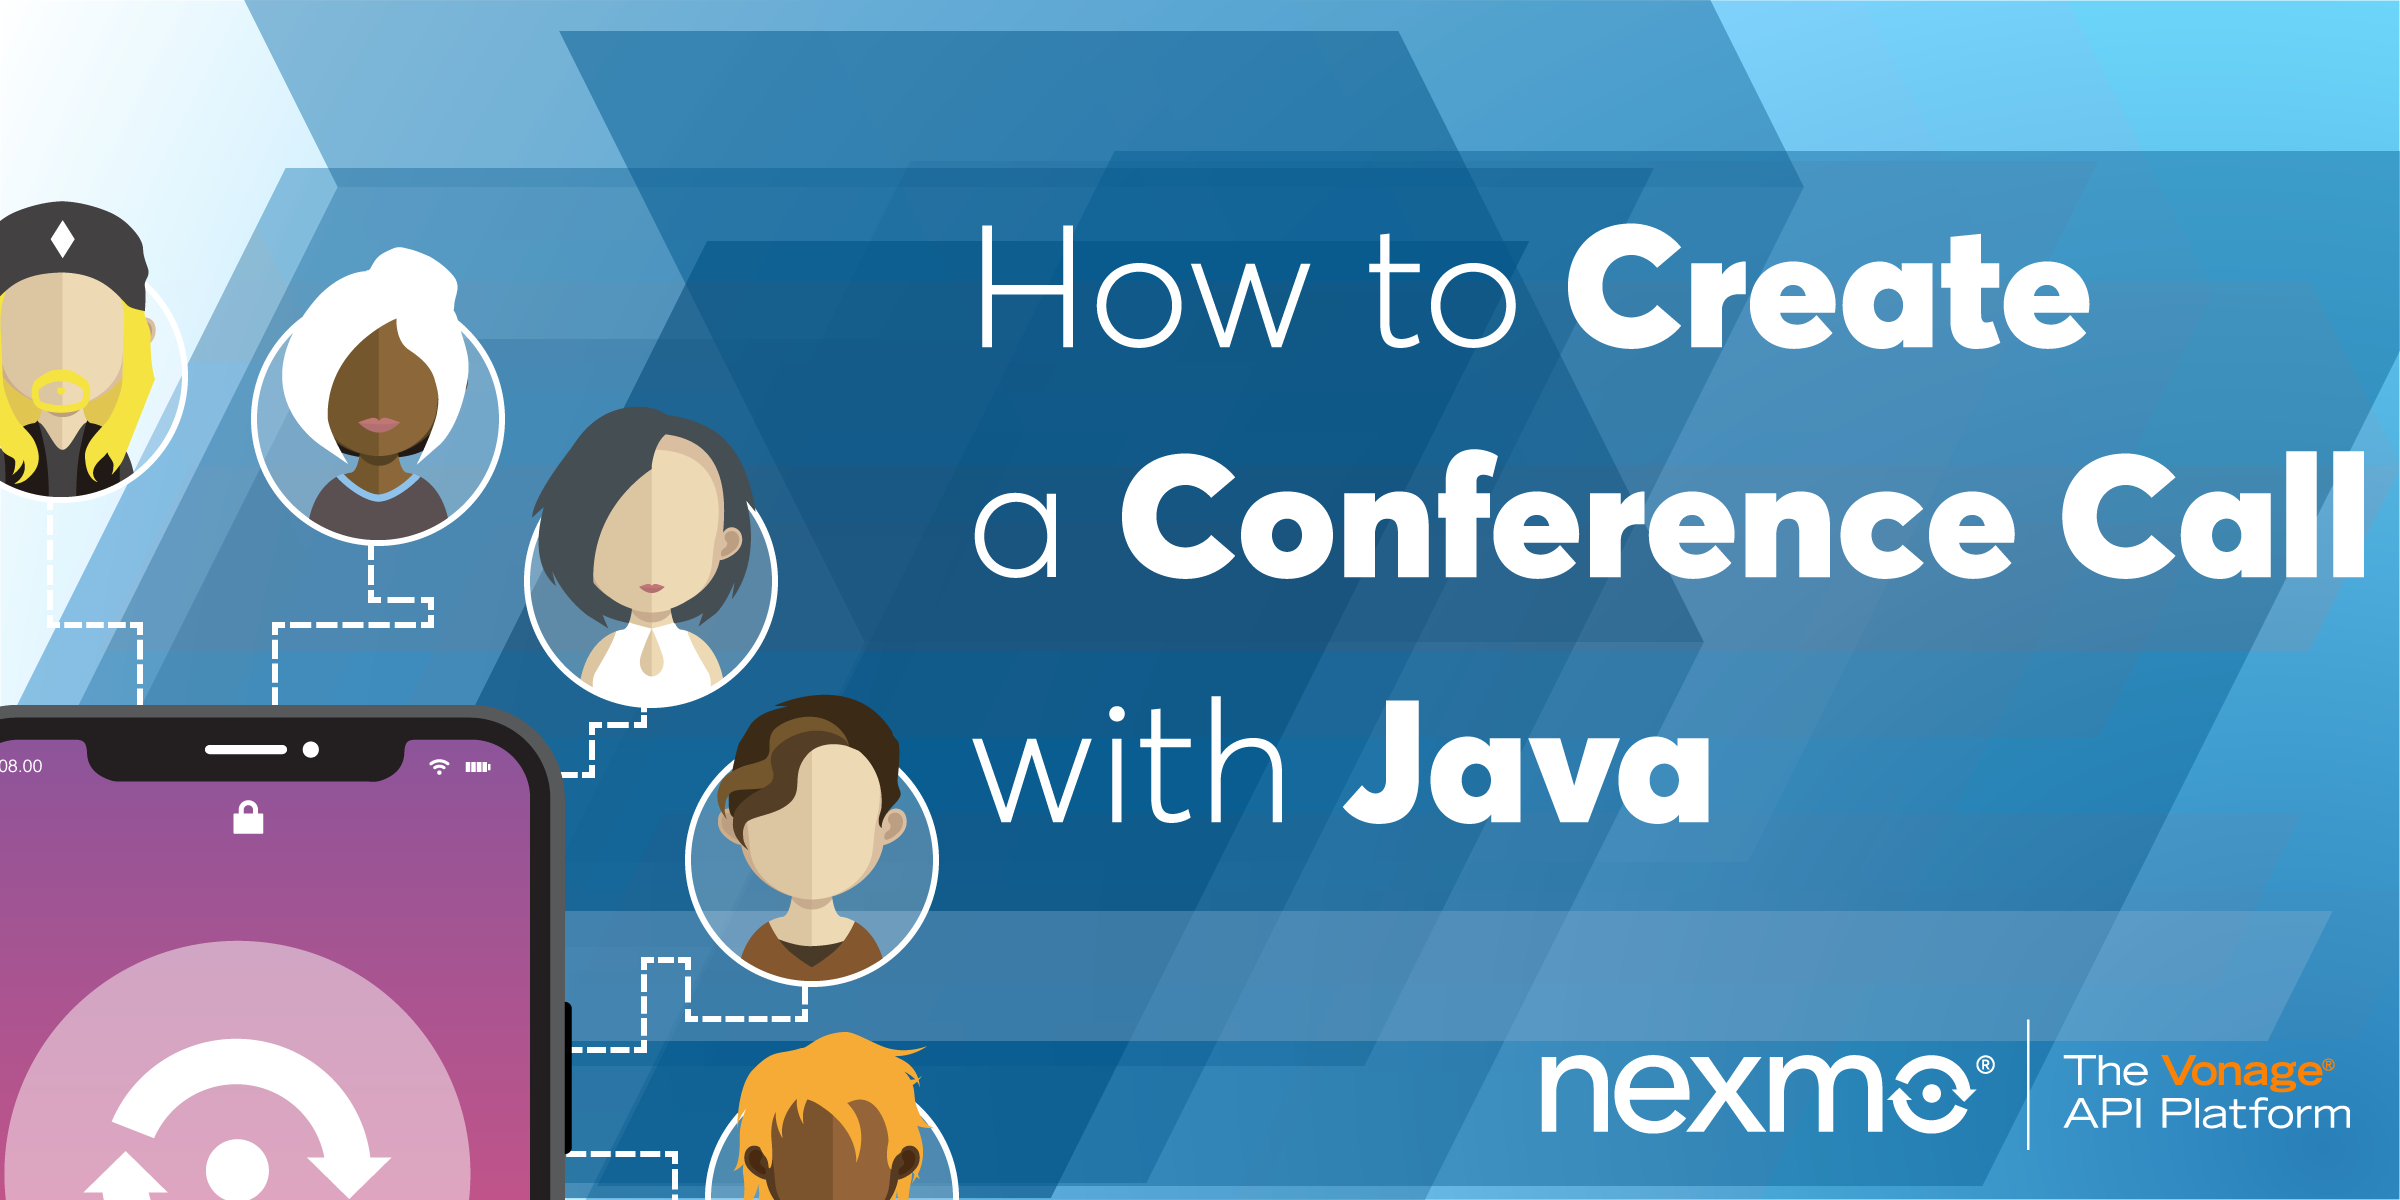 Create a Conference Call with Java